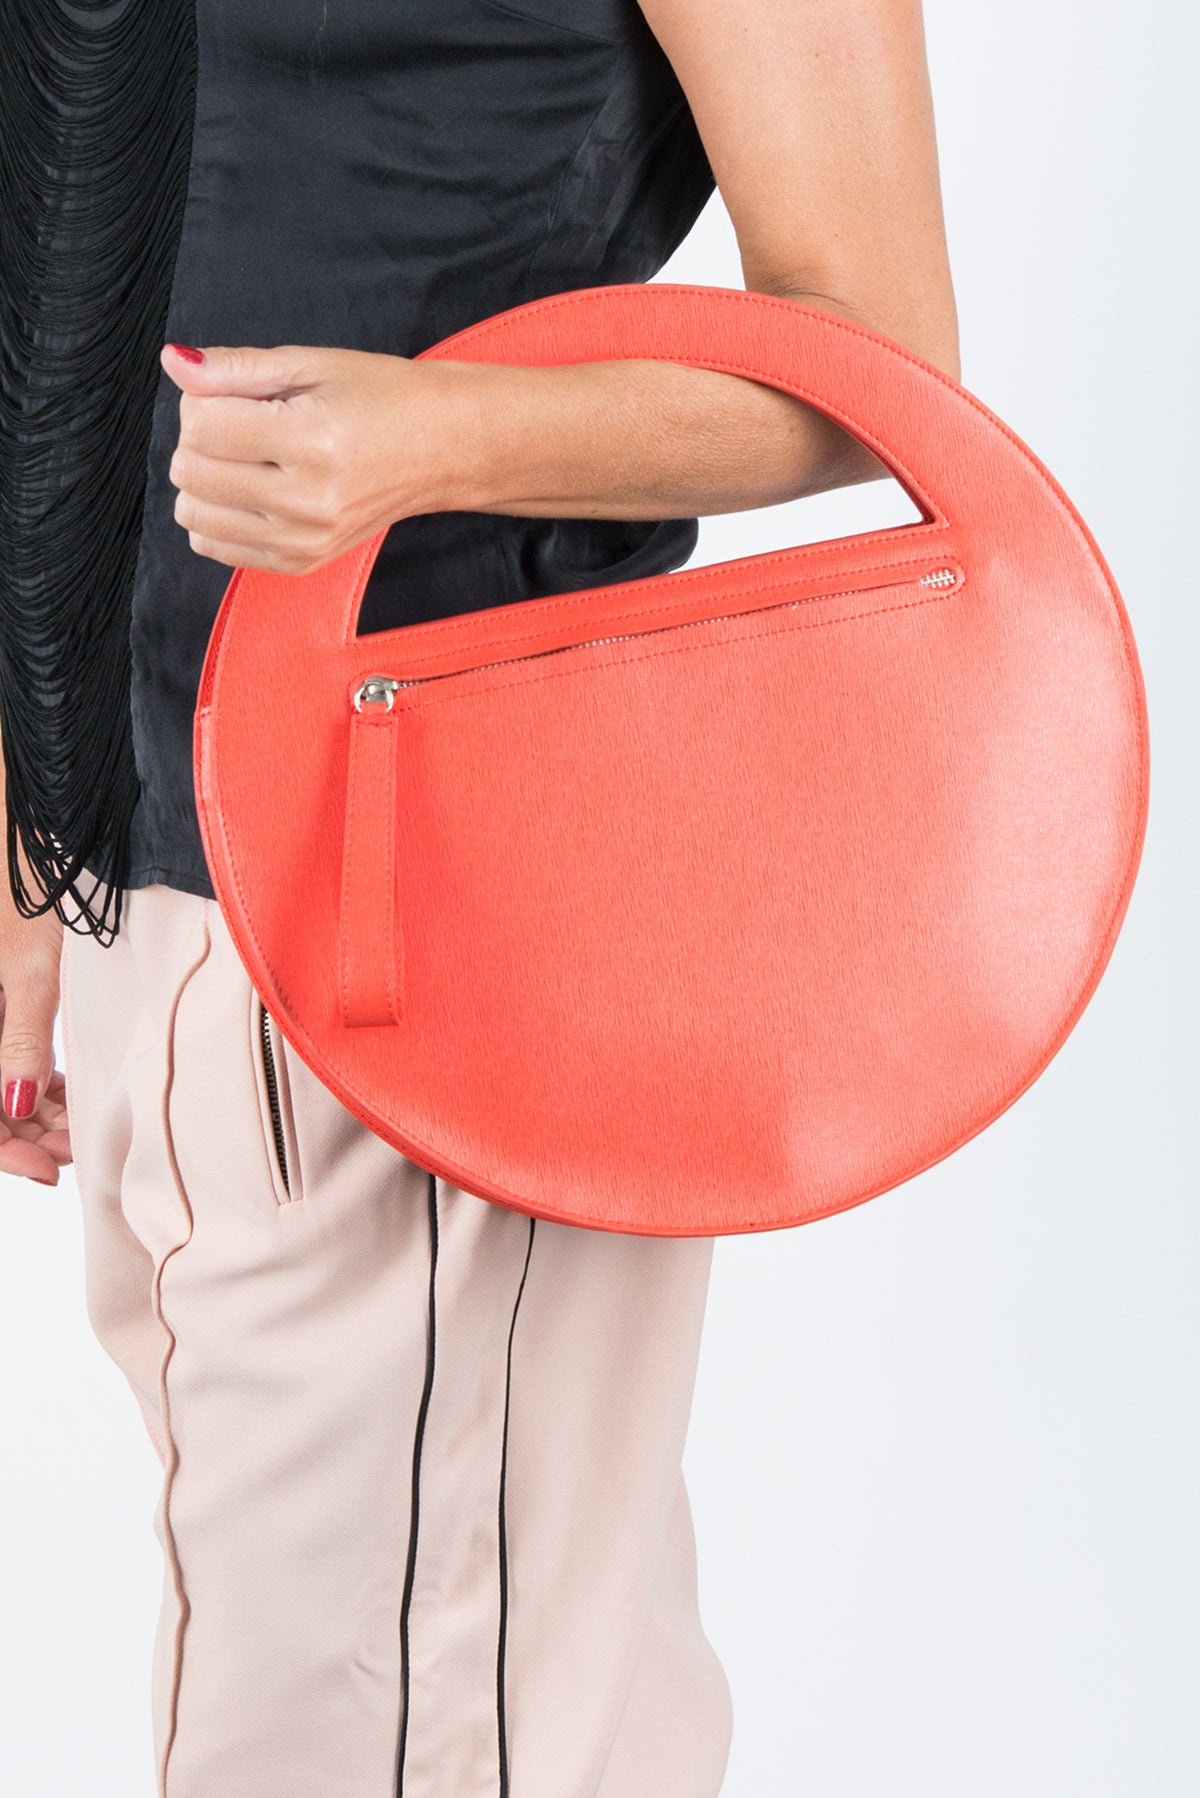 Orange Genuine Leather Clutch Hand Bag, Evening Leather Bag - EUG FASHION